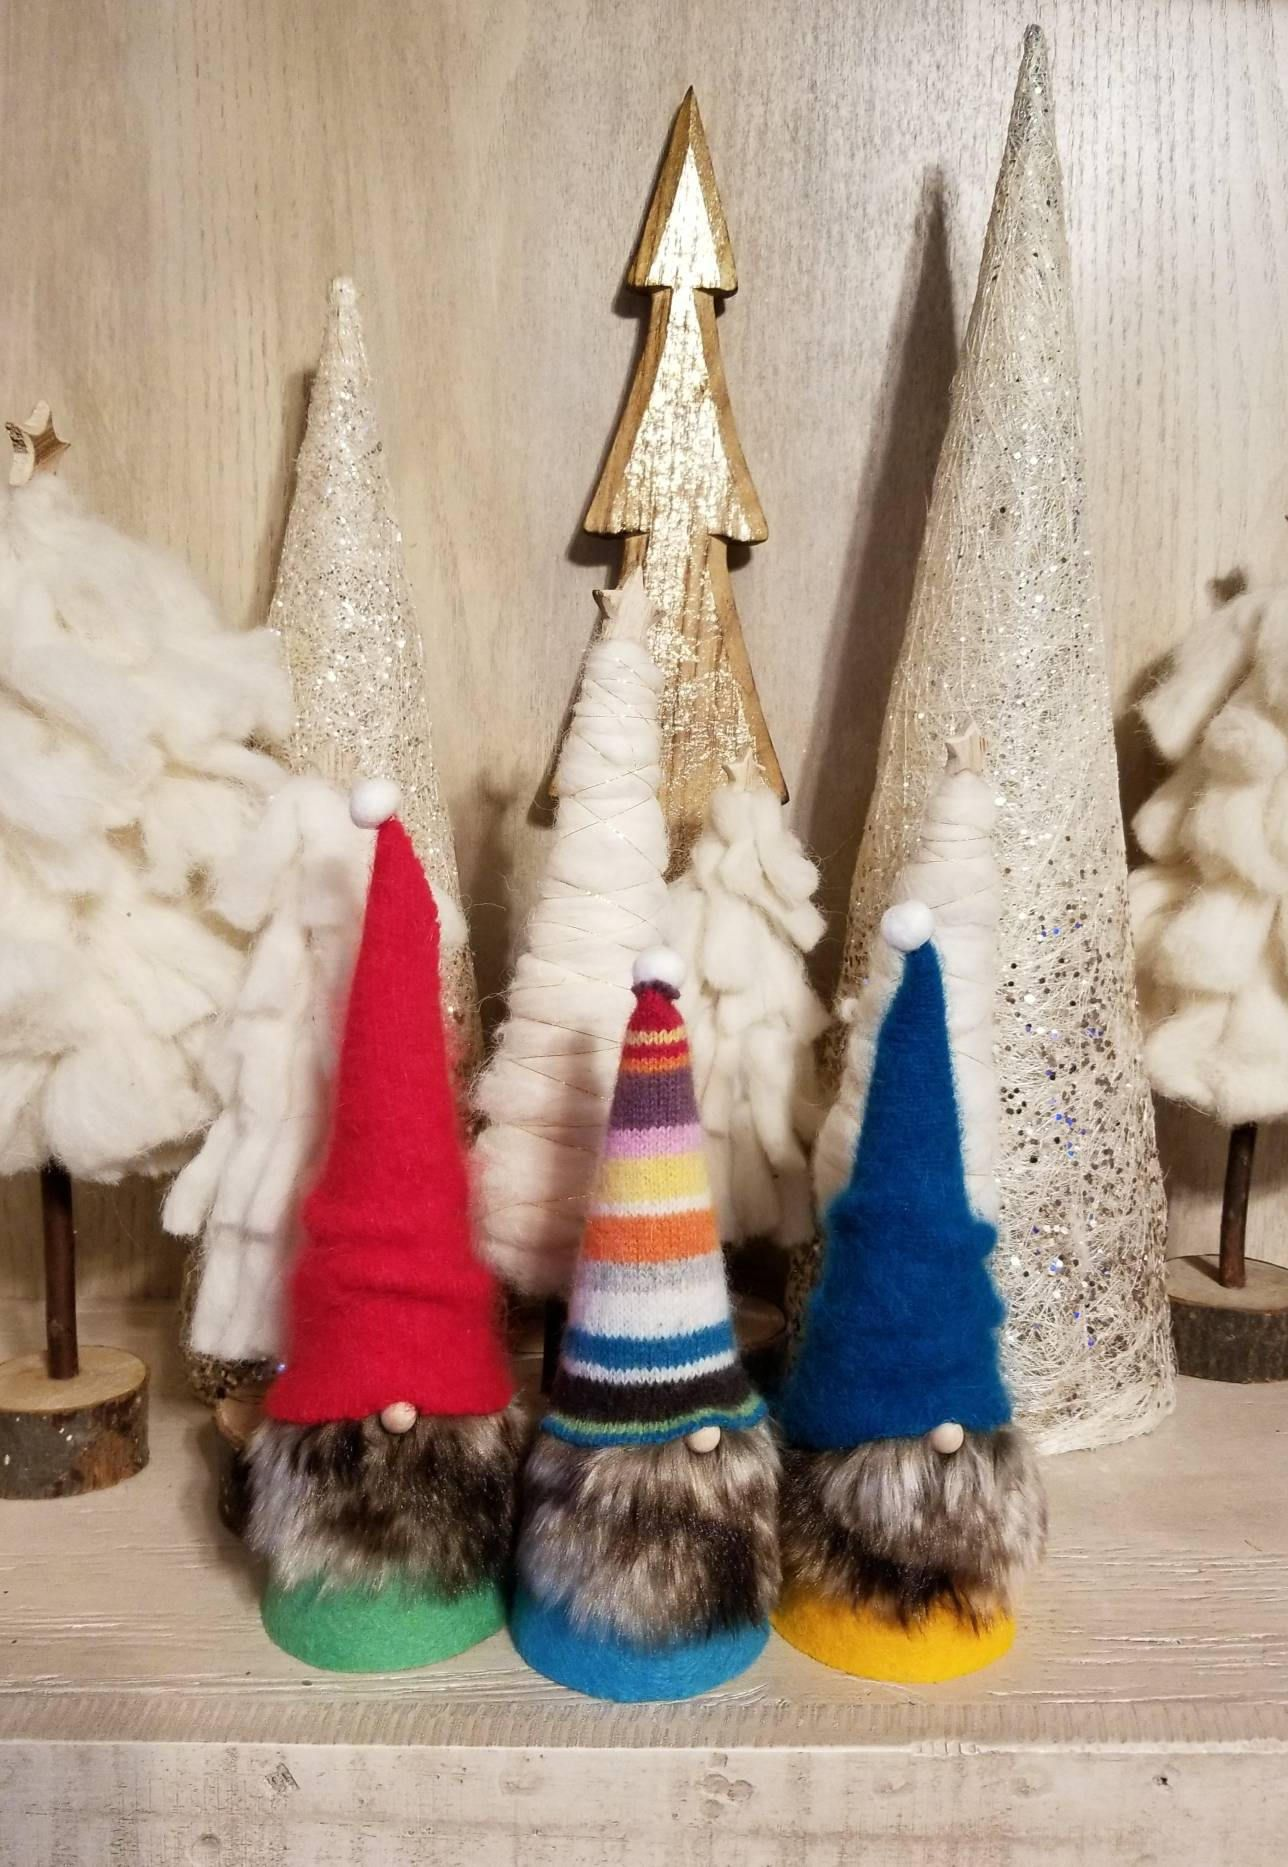 Christmas Gnomes Swedish Tomte Nisse Scandinavian Folklore Wizard Set Of 3 Cute Gift Idea Group N By Gnomes4t Christmas Gnome Cute Gifts Swedish Tomte